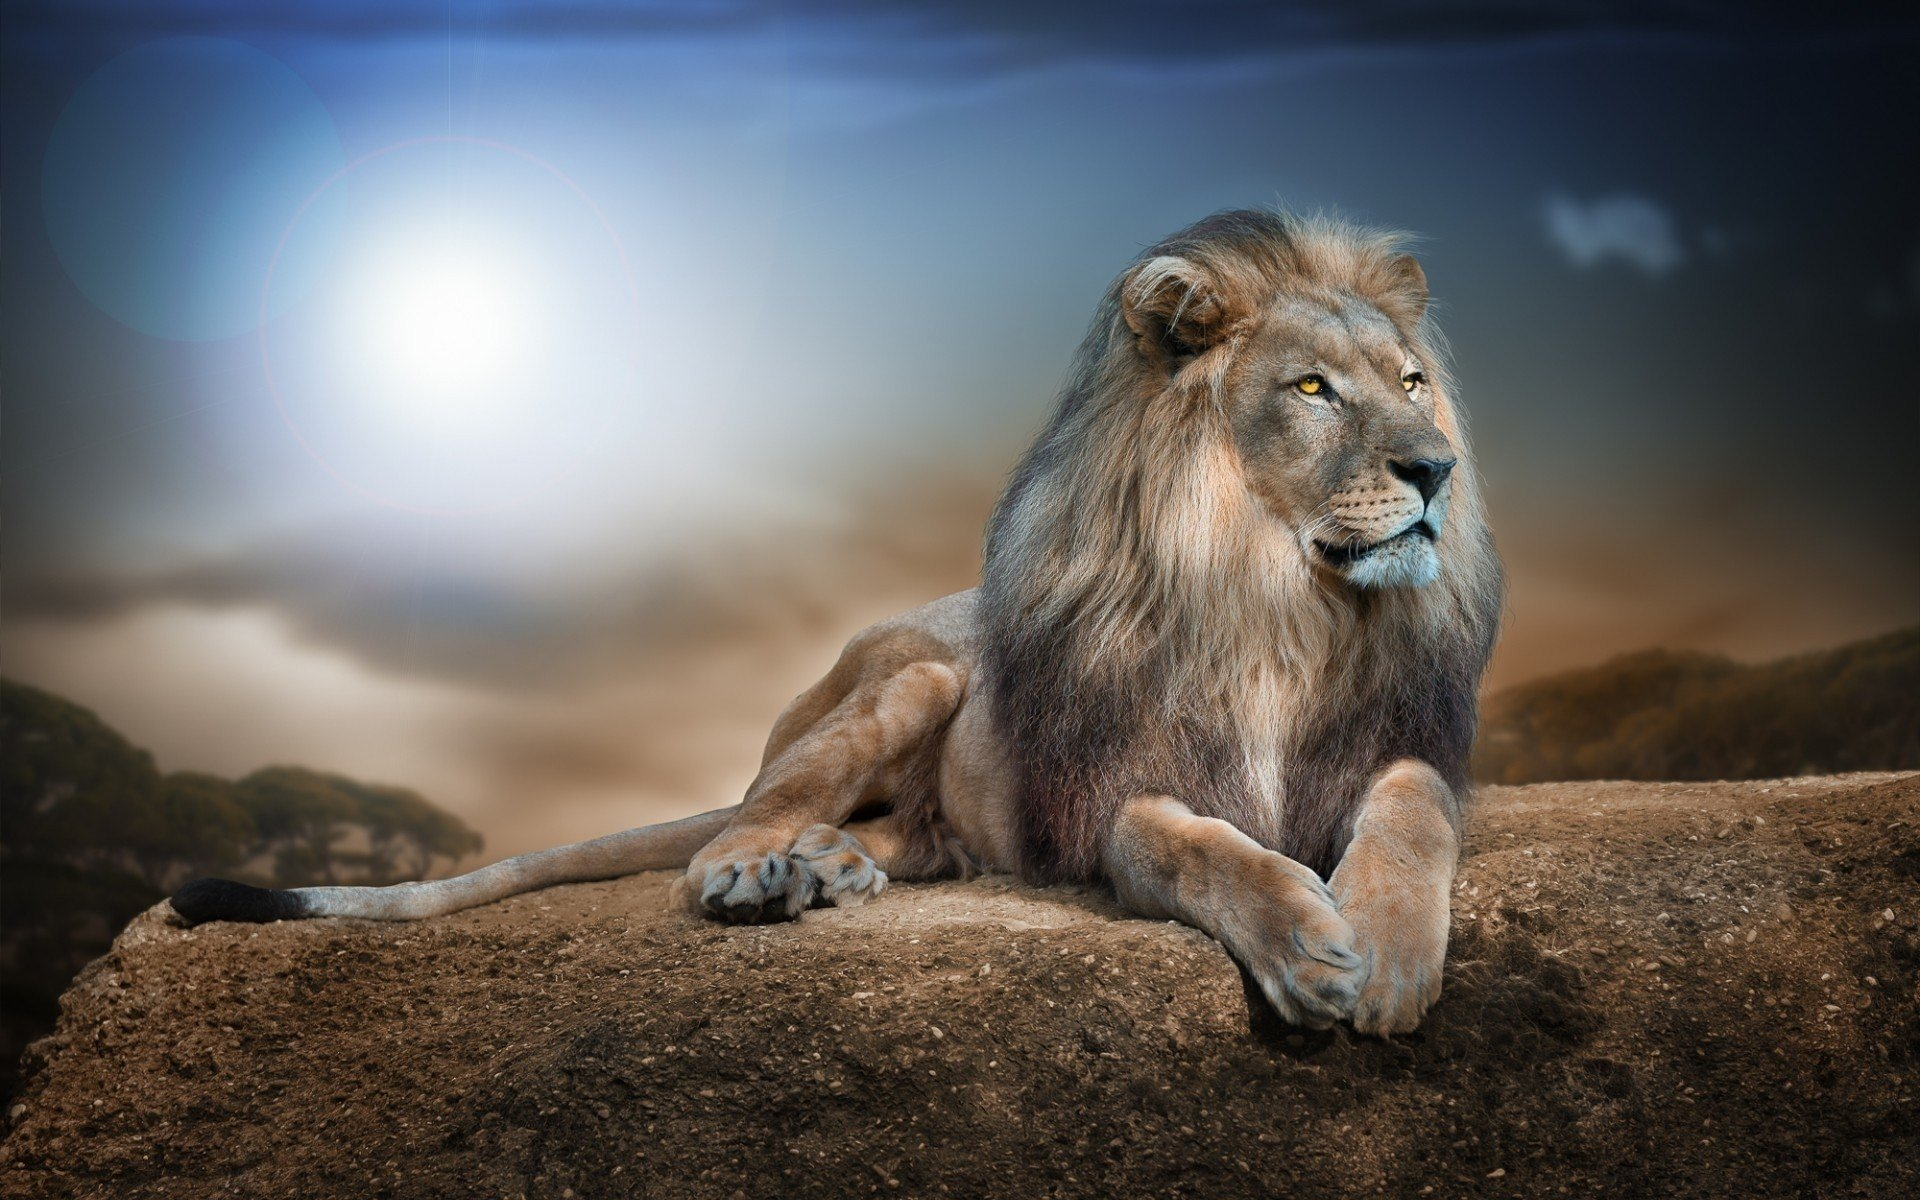 Most Inspiring Wallpaper Logo Lion - thumb-1920-487131  Perfect Image Reference_366112.jpg